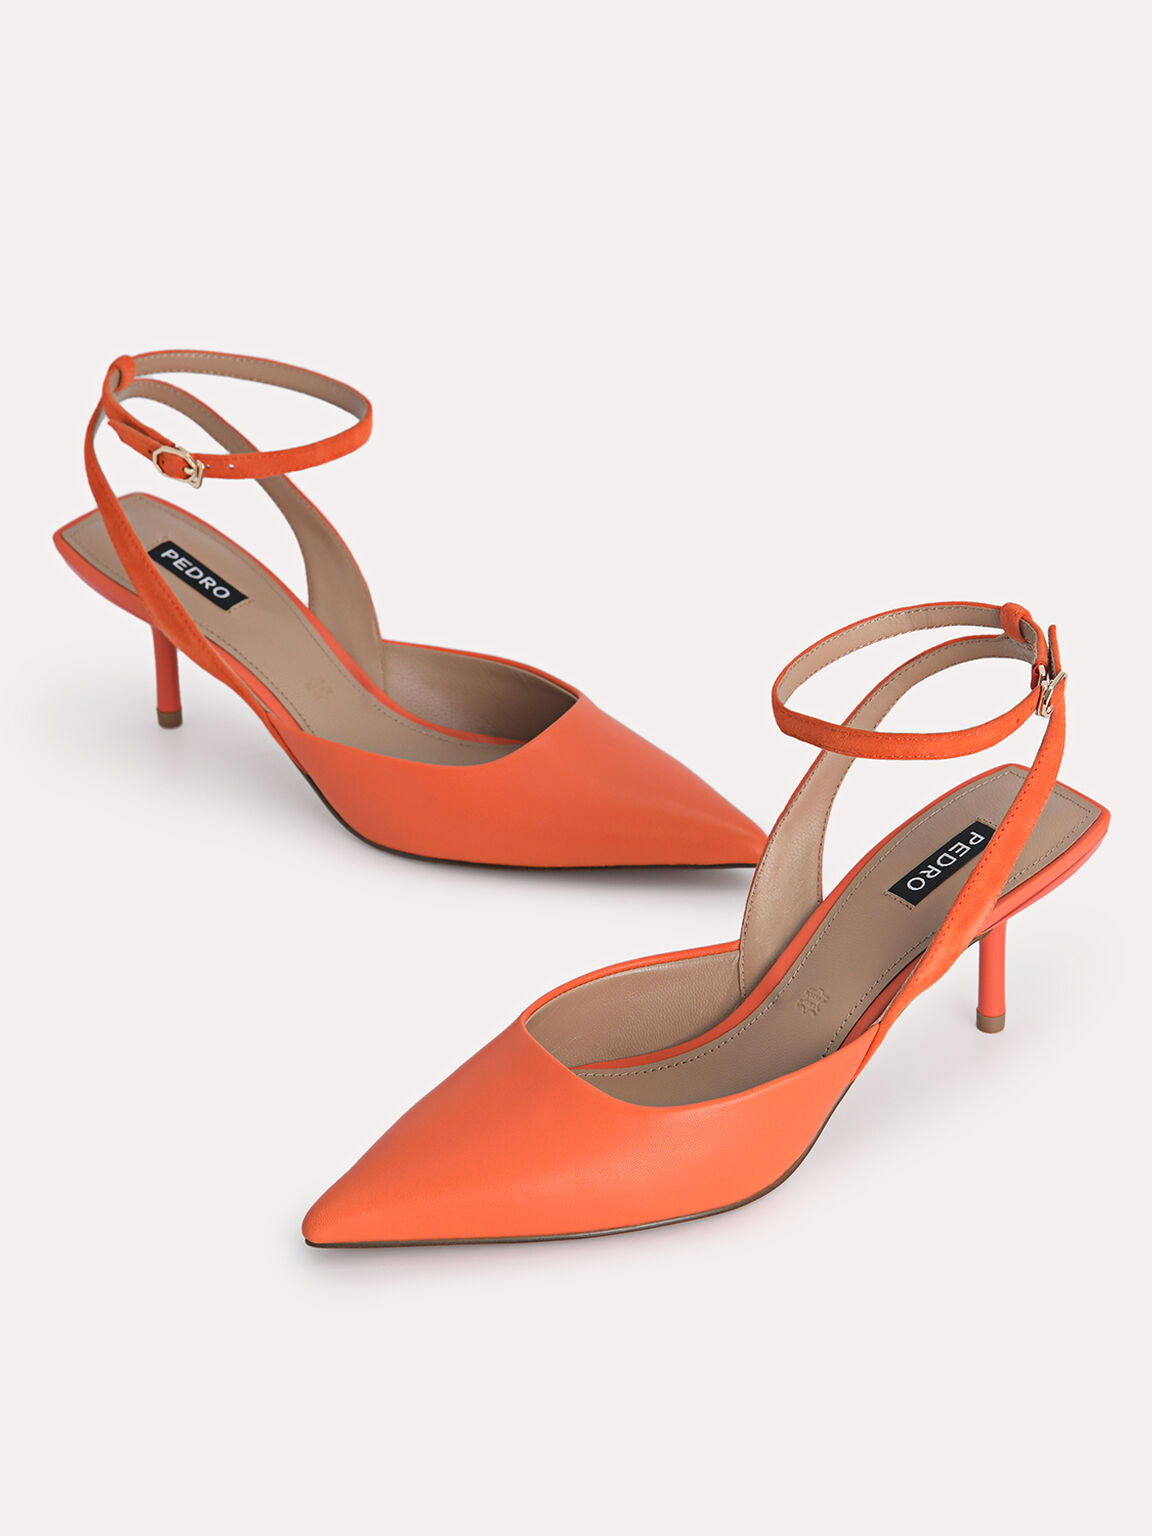 Leather Pointed Toe Pumps, Orange, hi-res